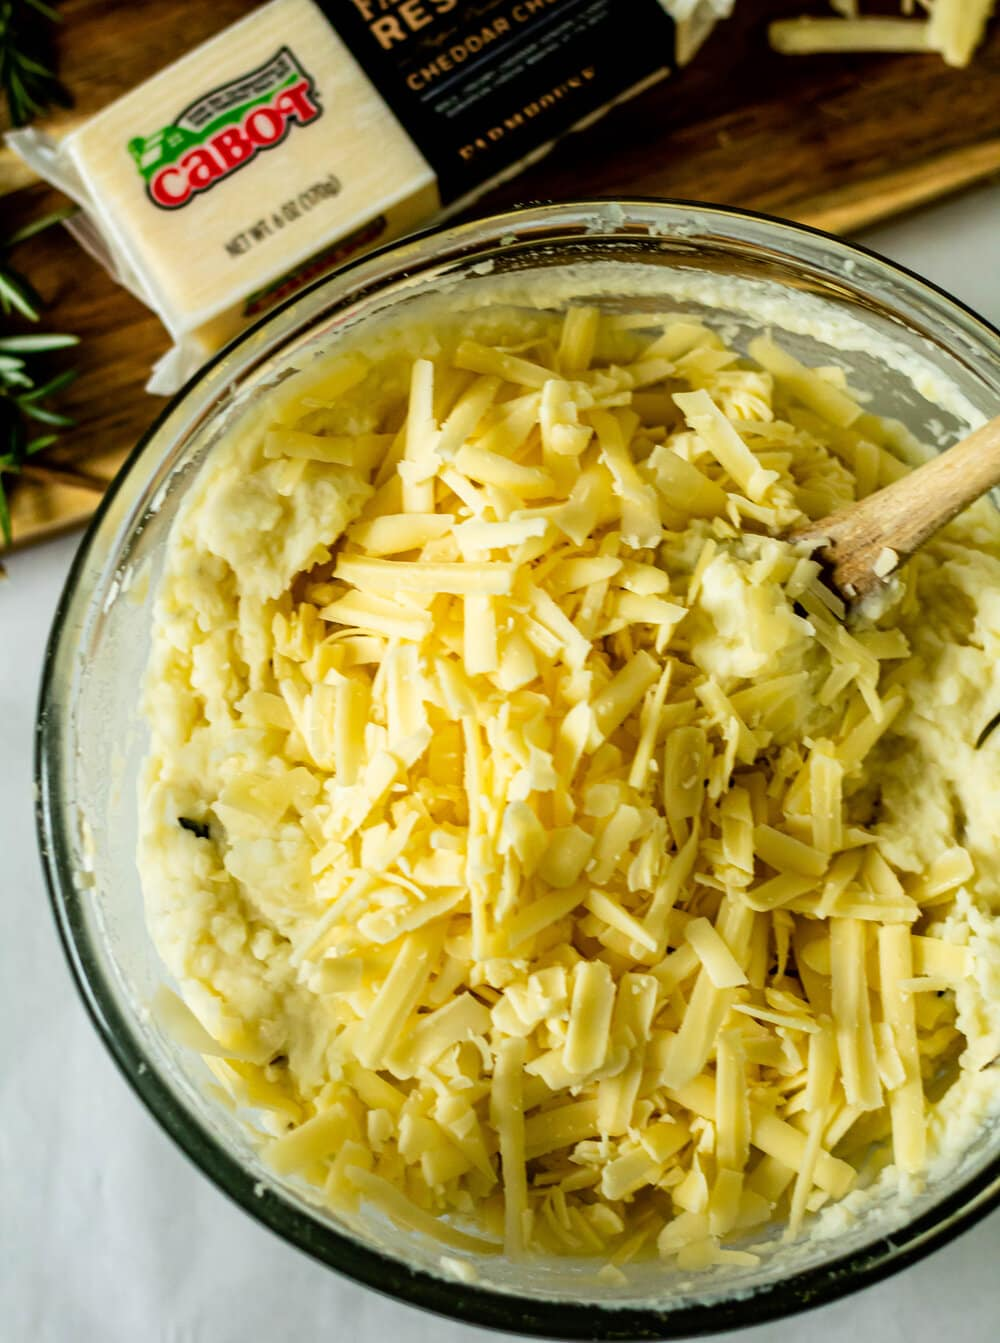 Rosemary and White Cheddar Mashed Potatoes (Gluten-Free)